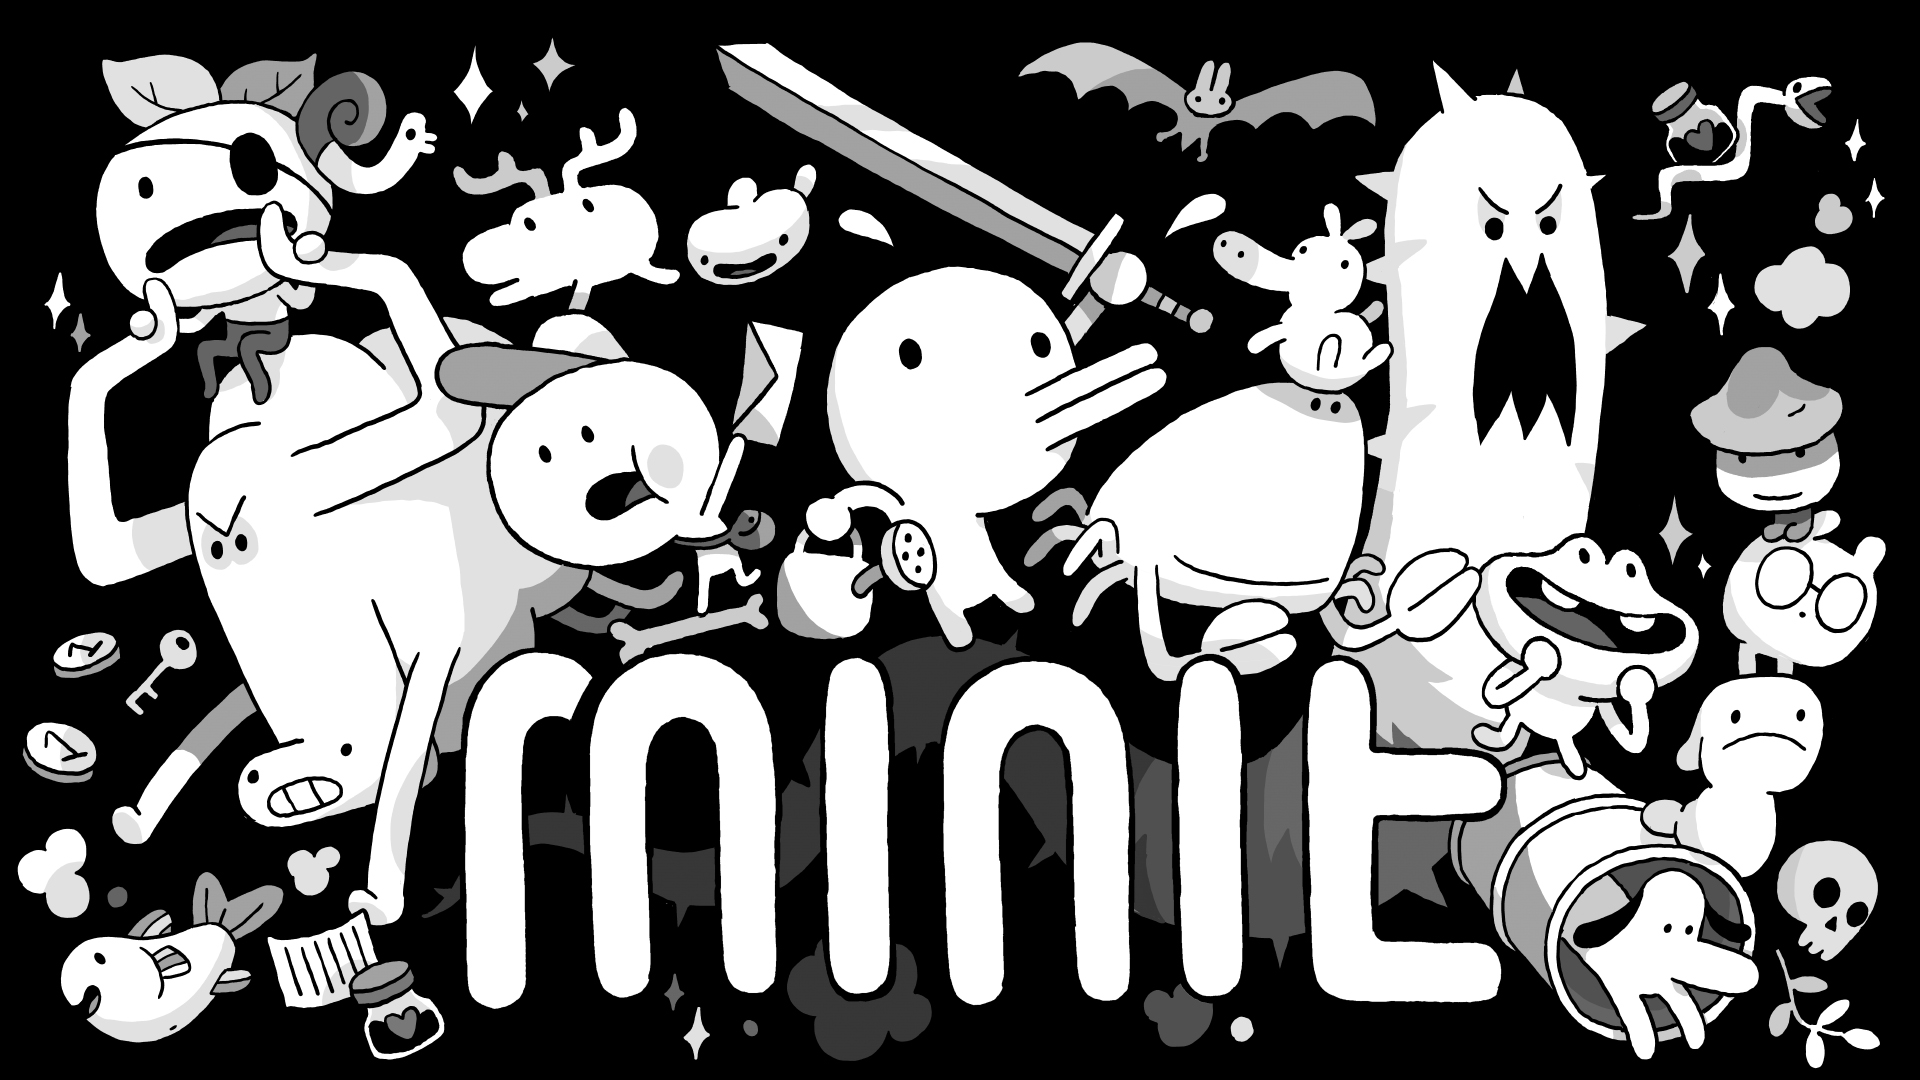 minit-switch-hero